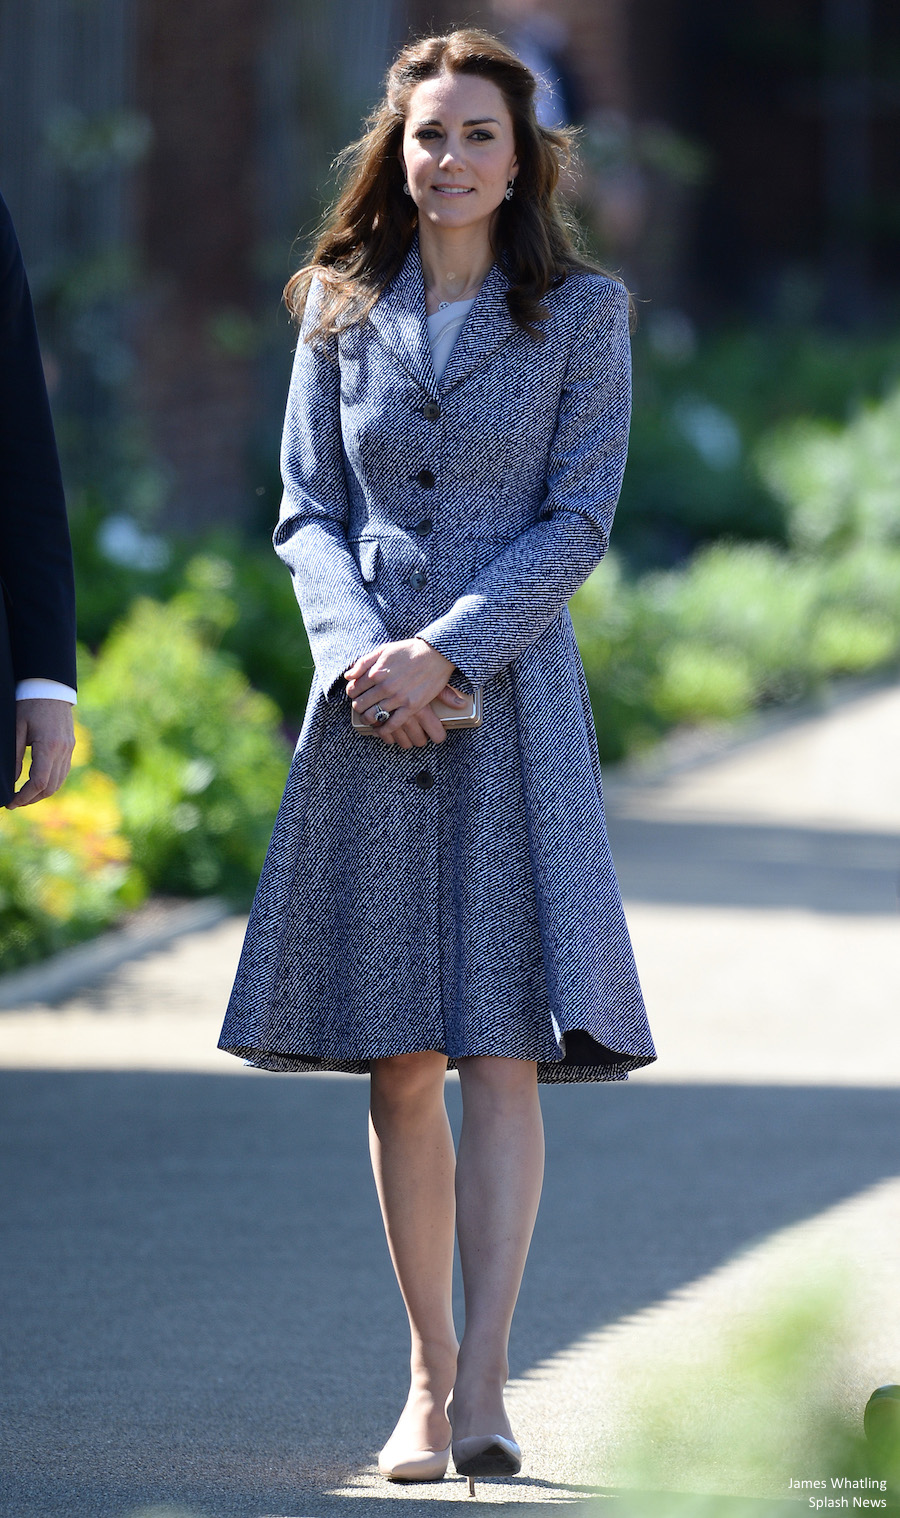 The Duchess of Cambridge officially opens the Magic Garden at Hampton Court Palace, London, UK, on the 14th April 2016. Pictured: Duchess of Cambridge, Catherine, Kate Middleton